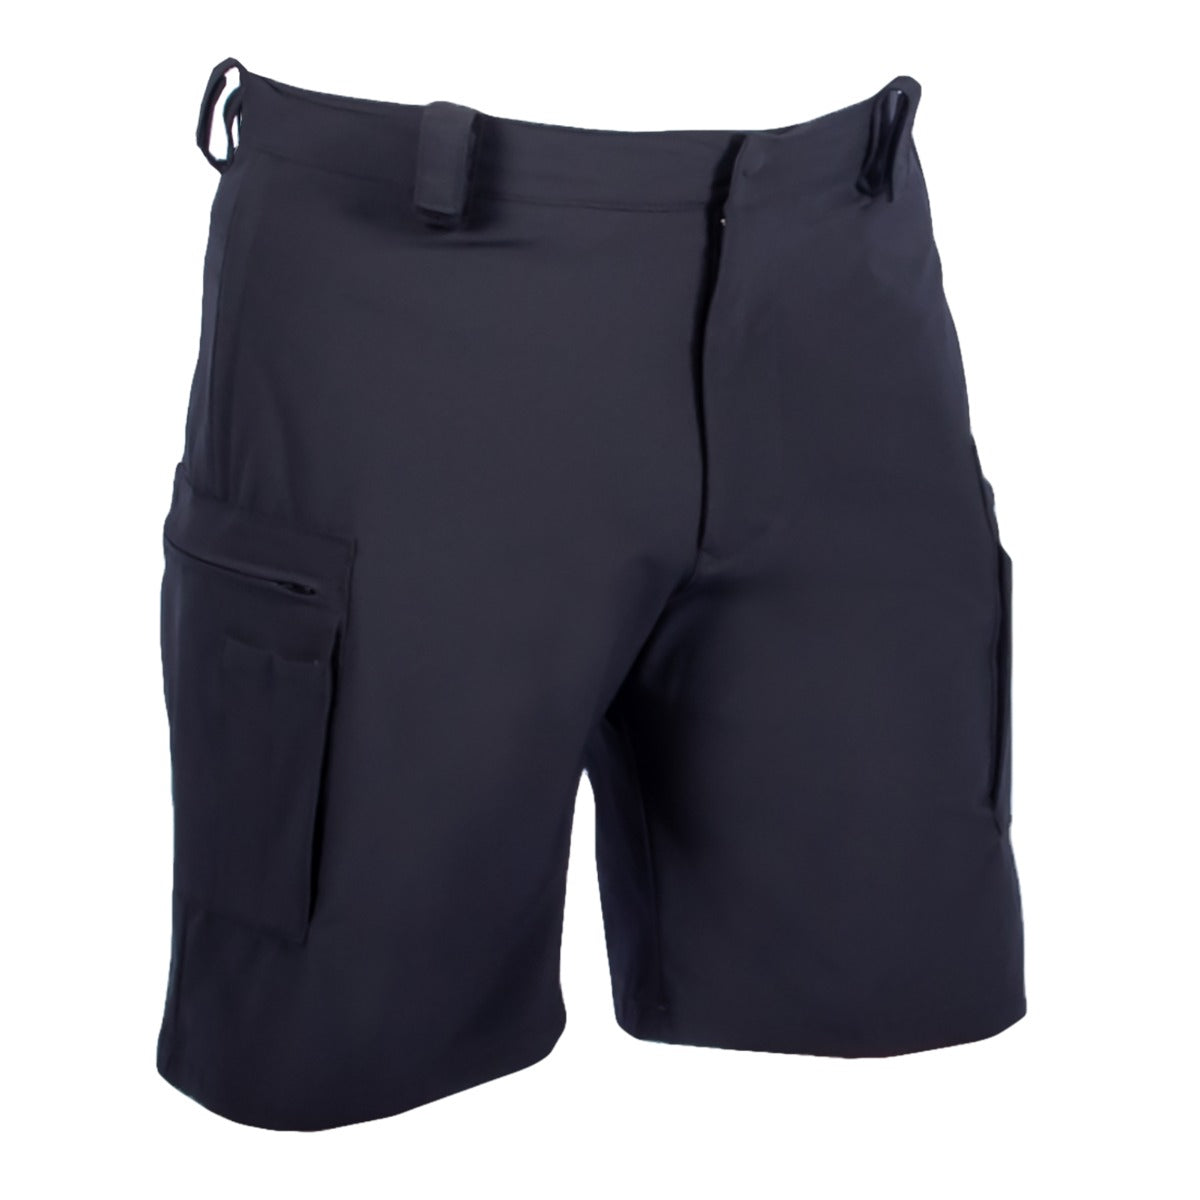 Extreme Stretch Ultraflex Shorts